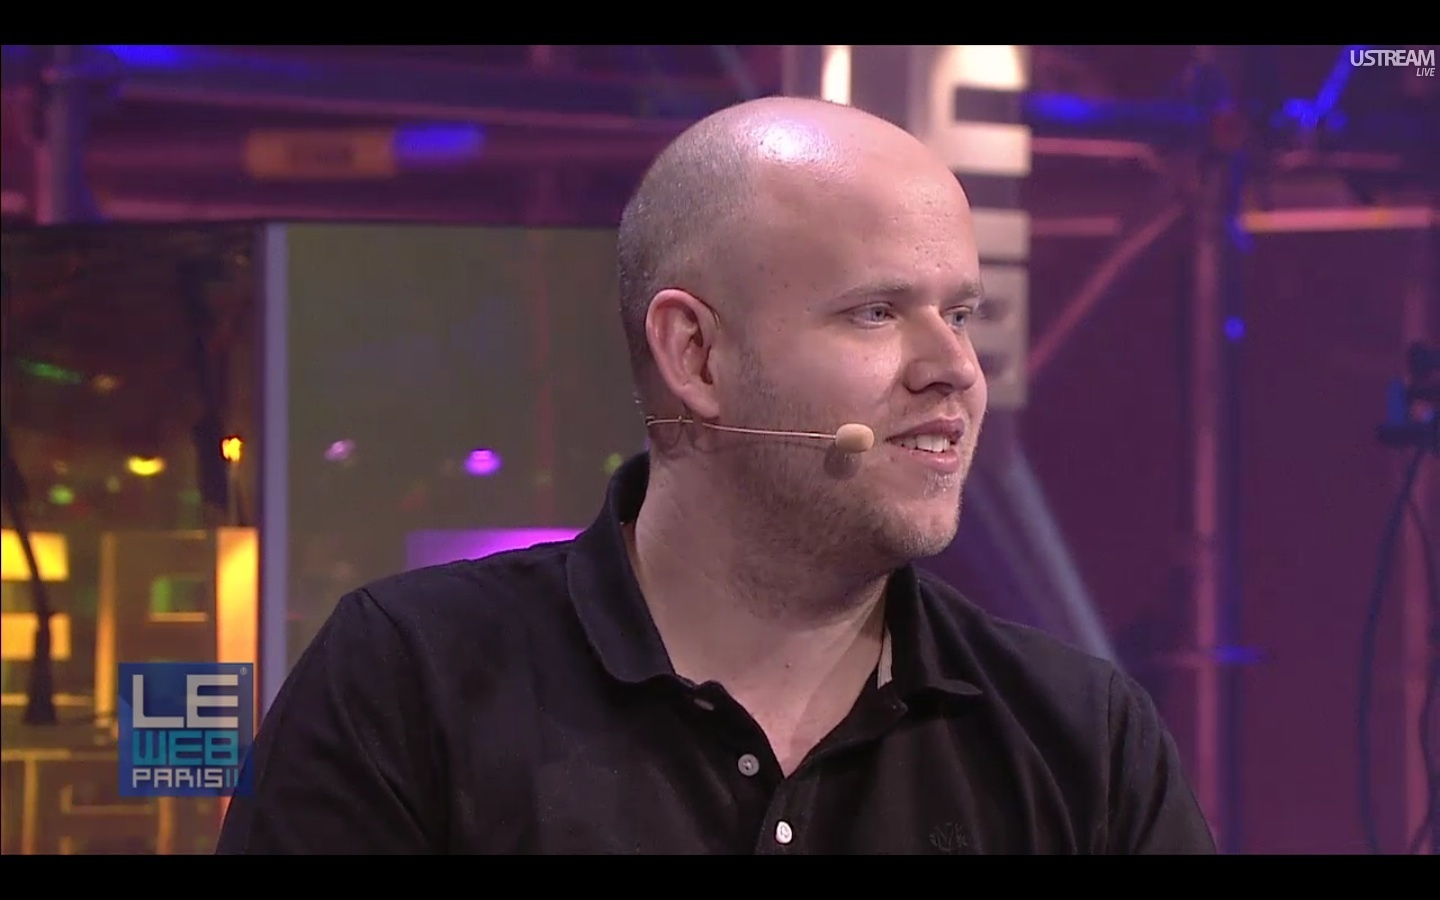 Spotify co-founder and CEO Daniel Ek speaks at LeWeb.